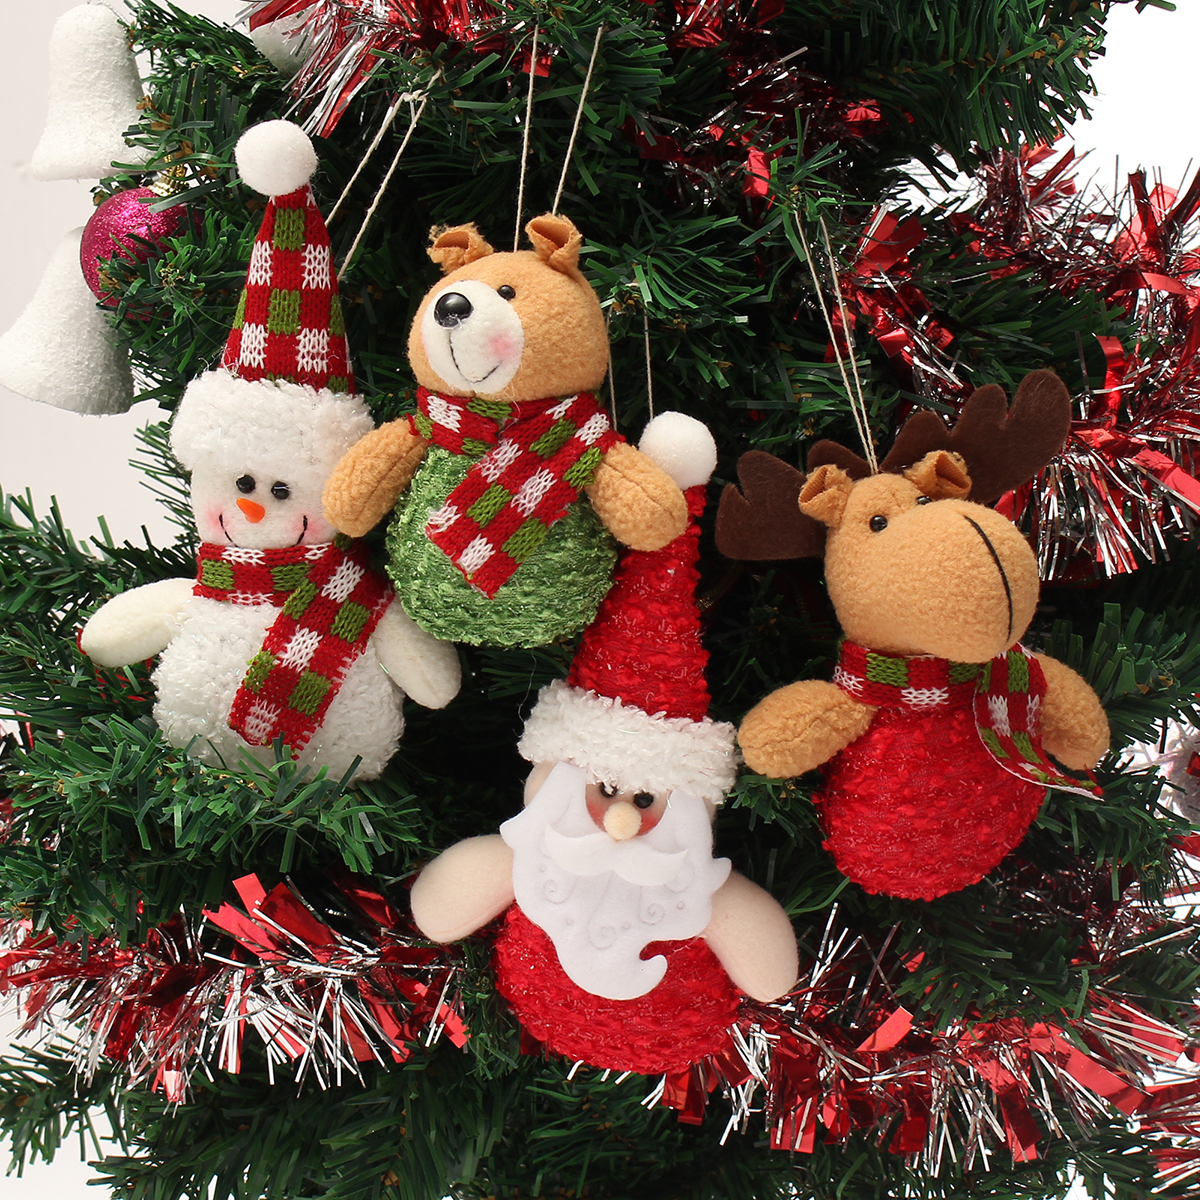 Christmas Haning Dolls Ornaments Snowman Reindeer Santa Claus Bear Xmas Decor - Photo: 1